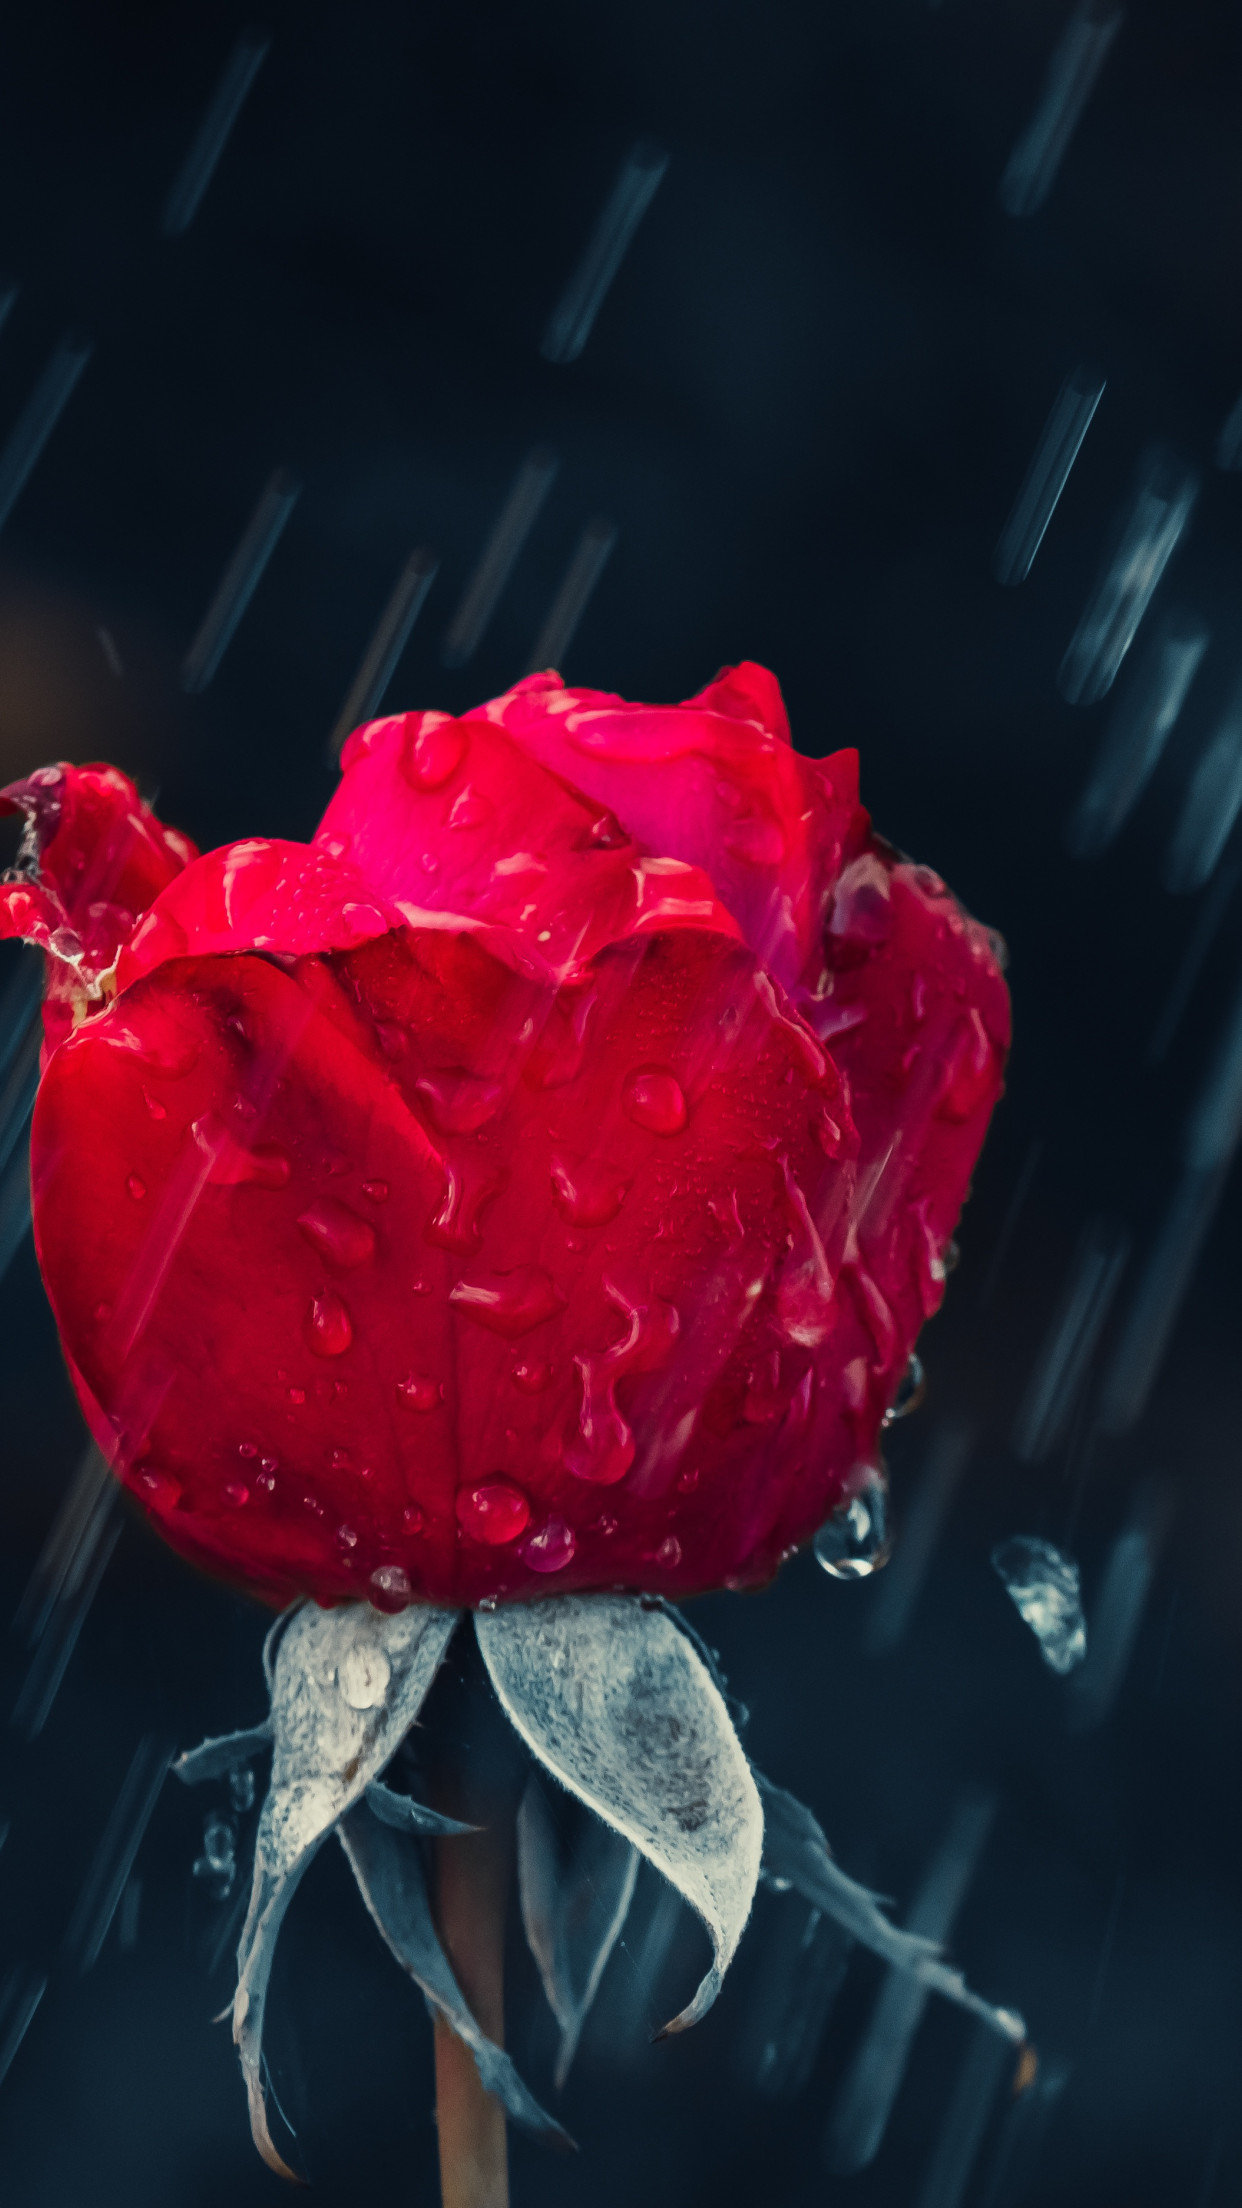 Red rose and raindrops wallpaper 1242x2208